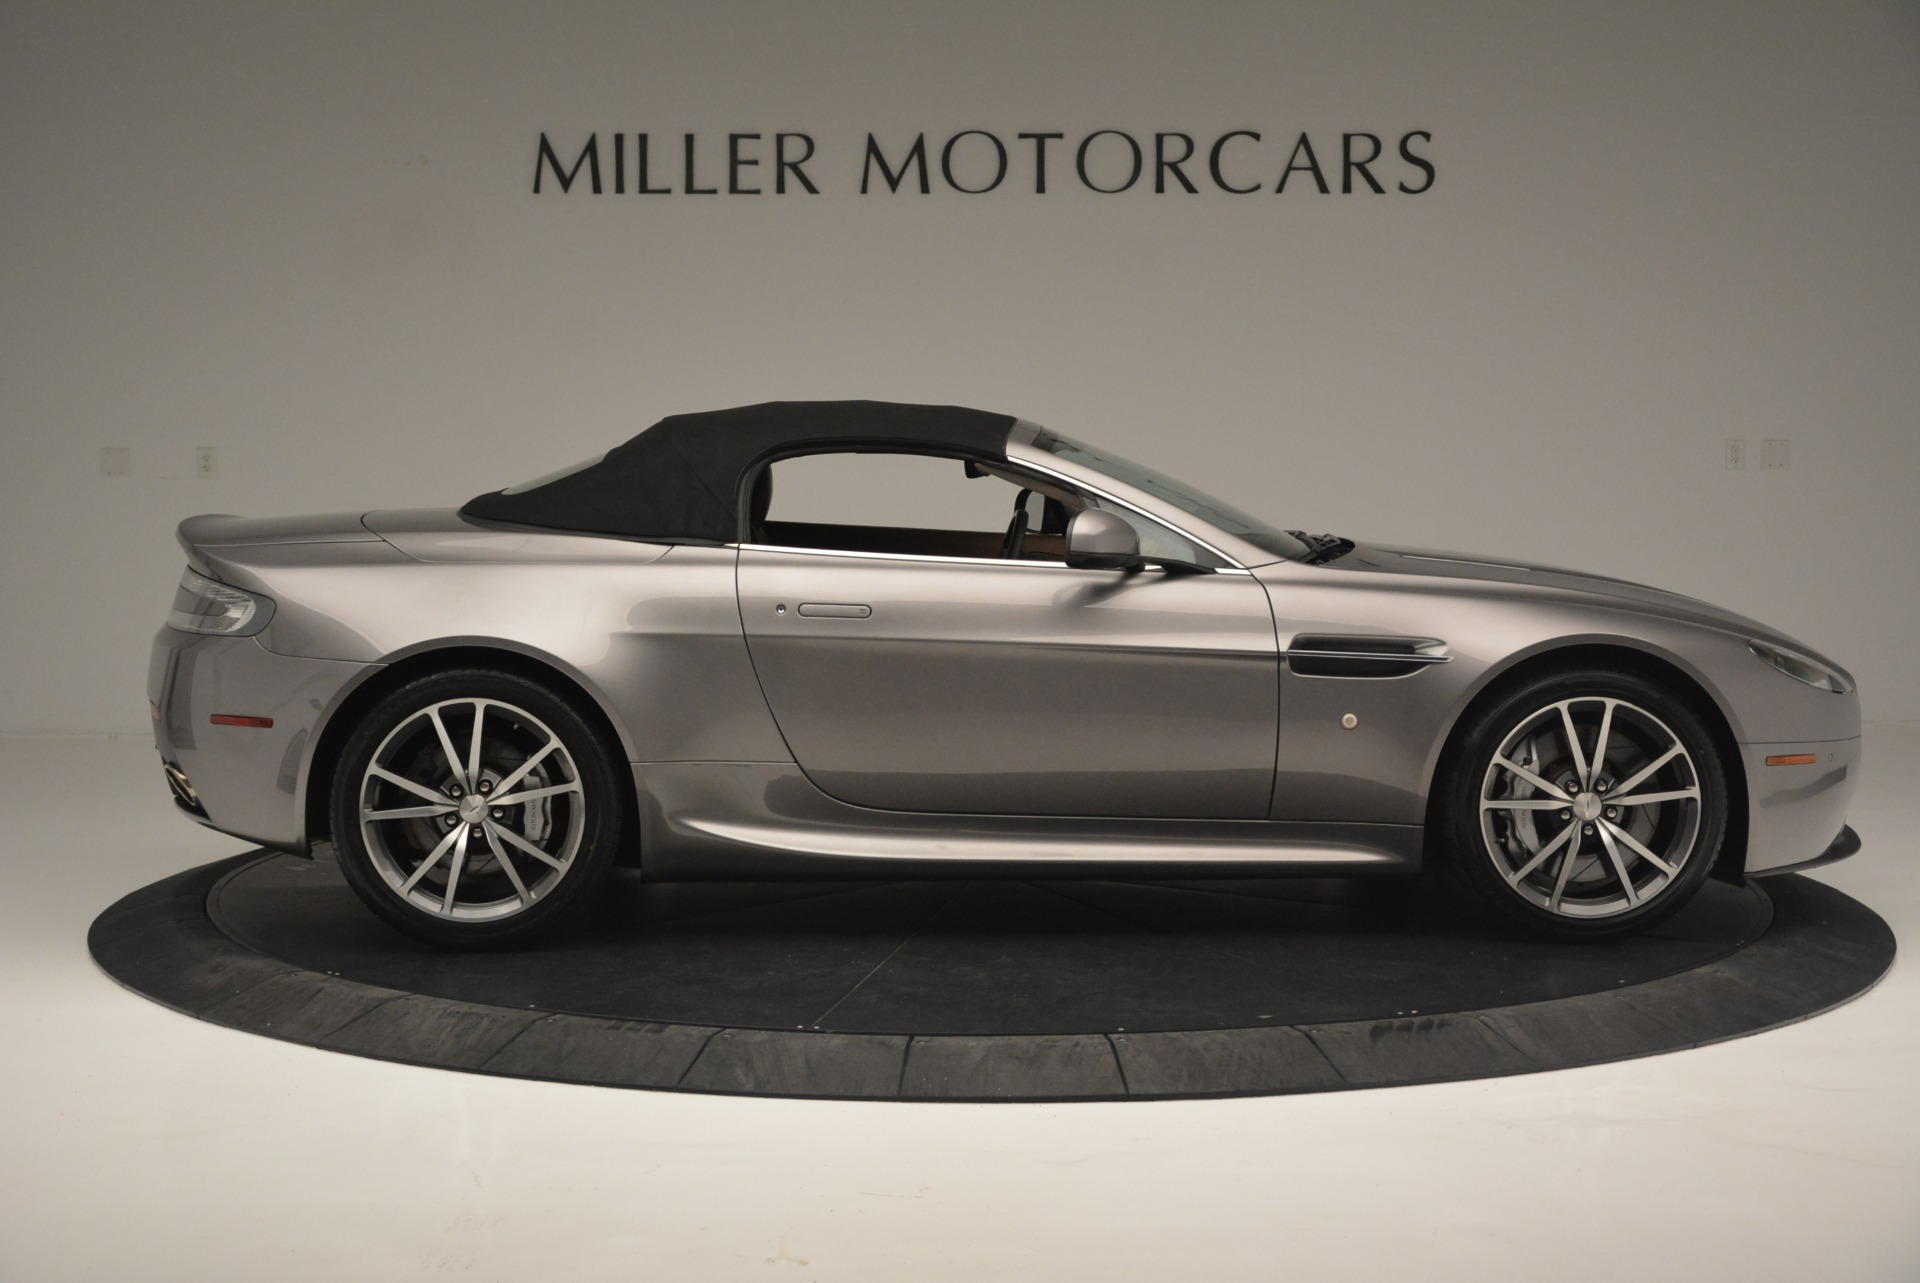 Used 2015 Aston Martin V8 Vantage Roadster For Sale In Greenwich, CT 2463_p16